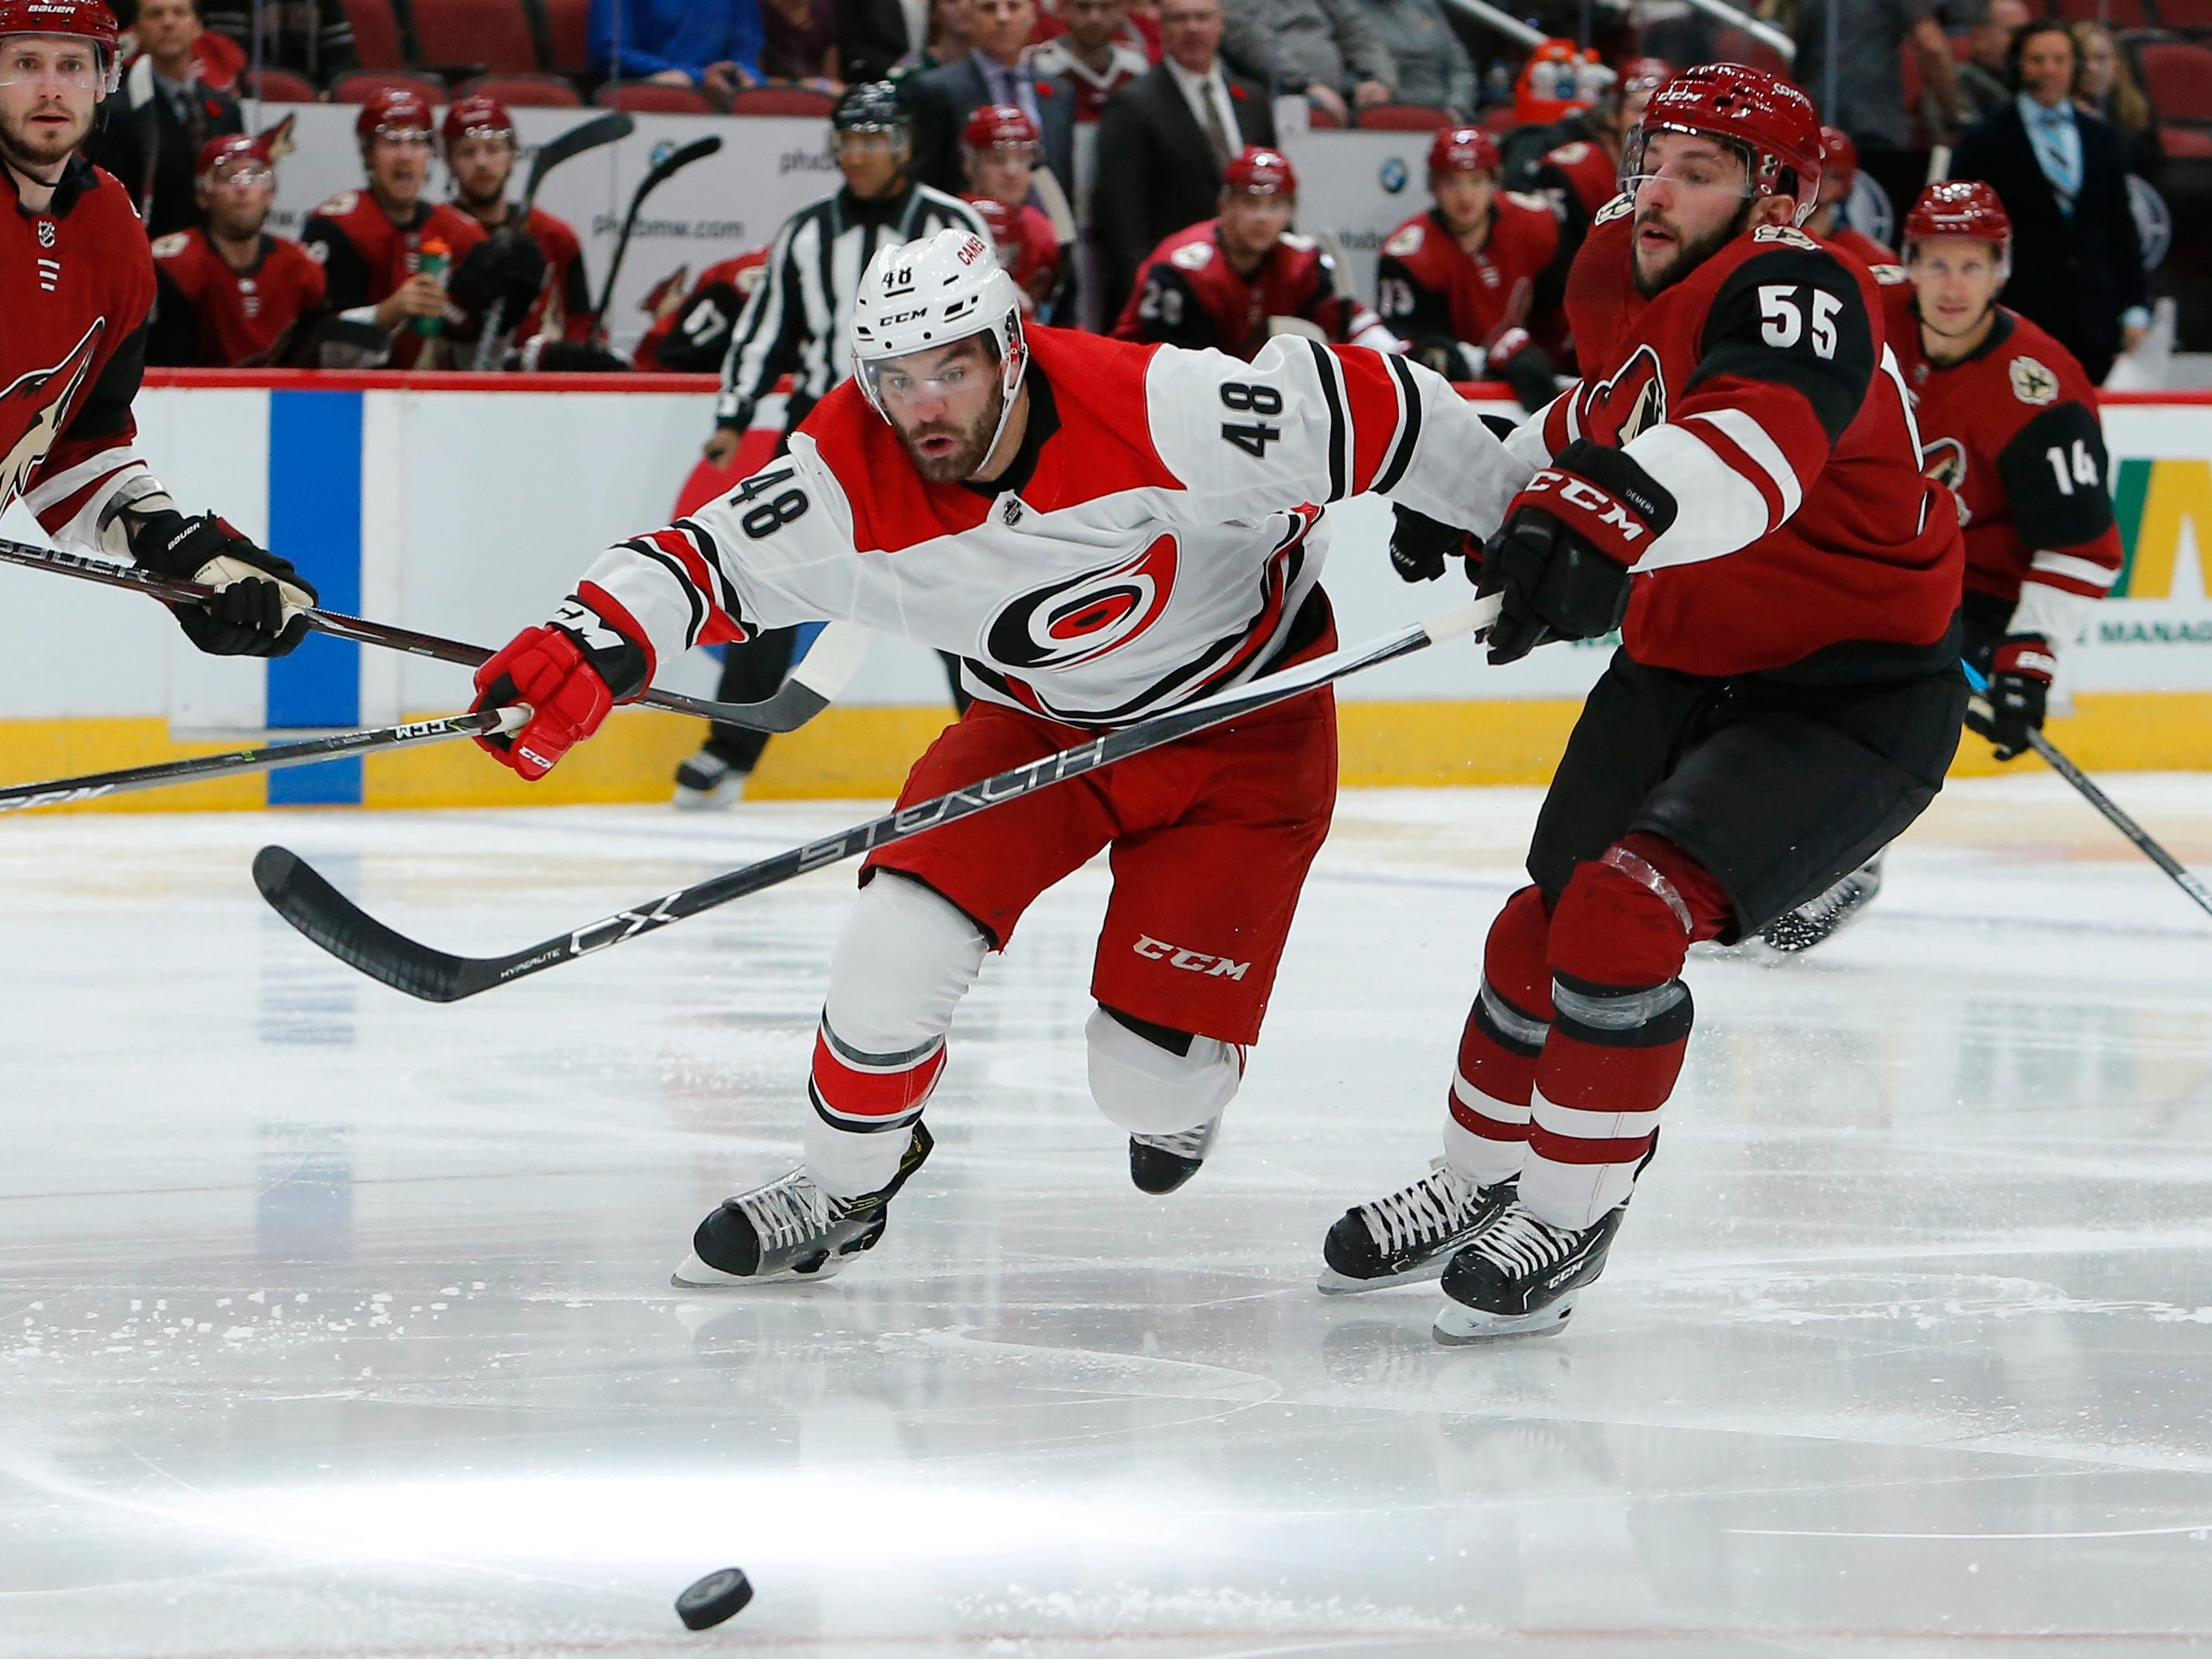 Carolina Hurricanes left wing Jordan Martinook (48) battles for the puck with Arizona Coyotes defenseman Jason Demers during the first period of an NHL hockey game Friday, Nov. 2, 2018, in Glendale, Ariz. (AP Photo/Rick Scuteri)